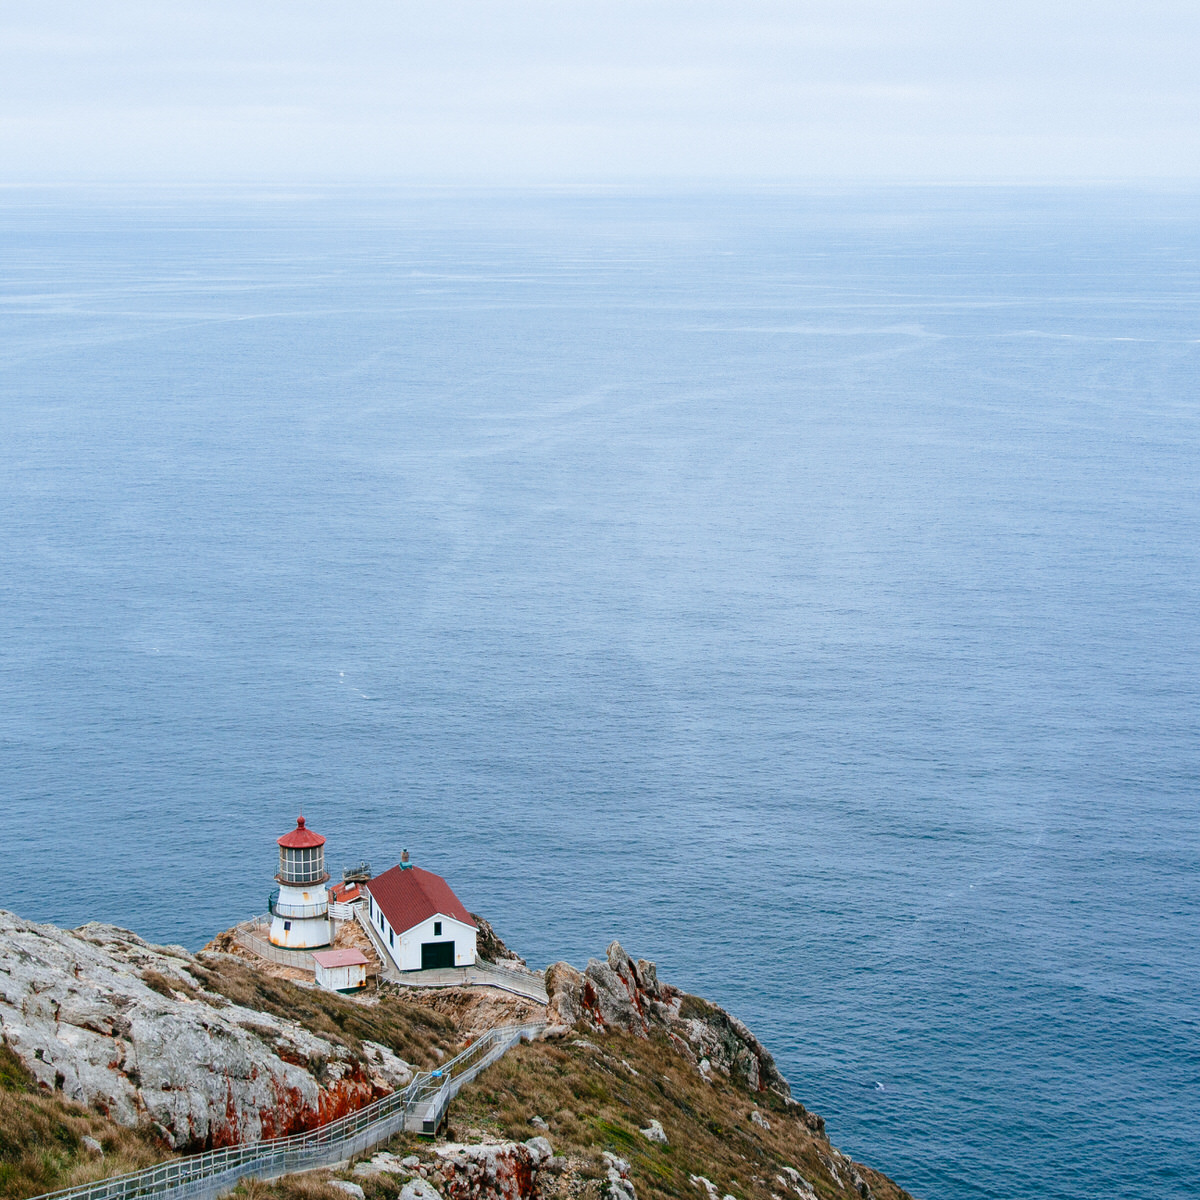 Point Reyes Lighthouse in Point Reyes National Seashore - Marin County, California